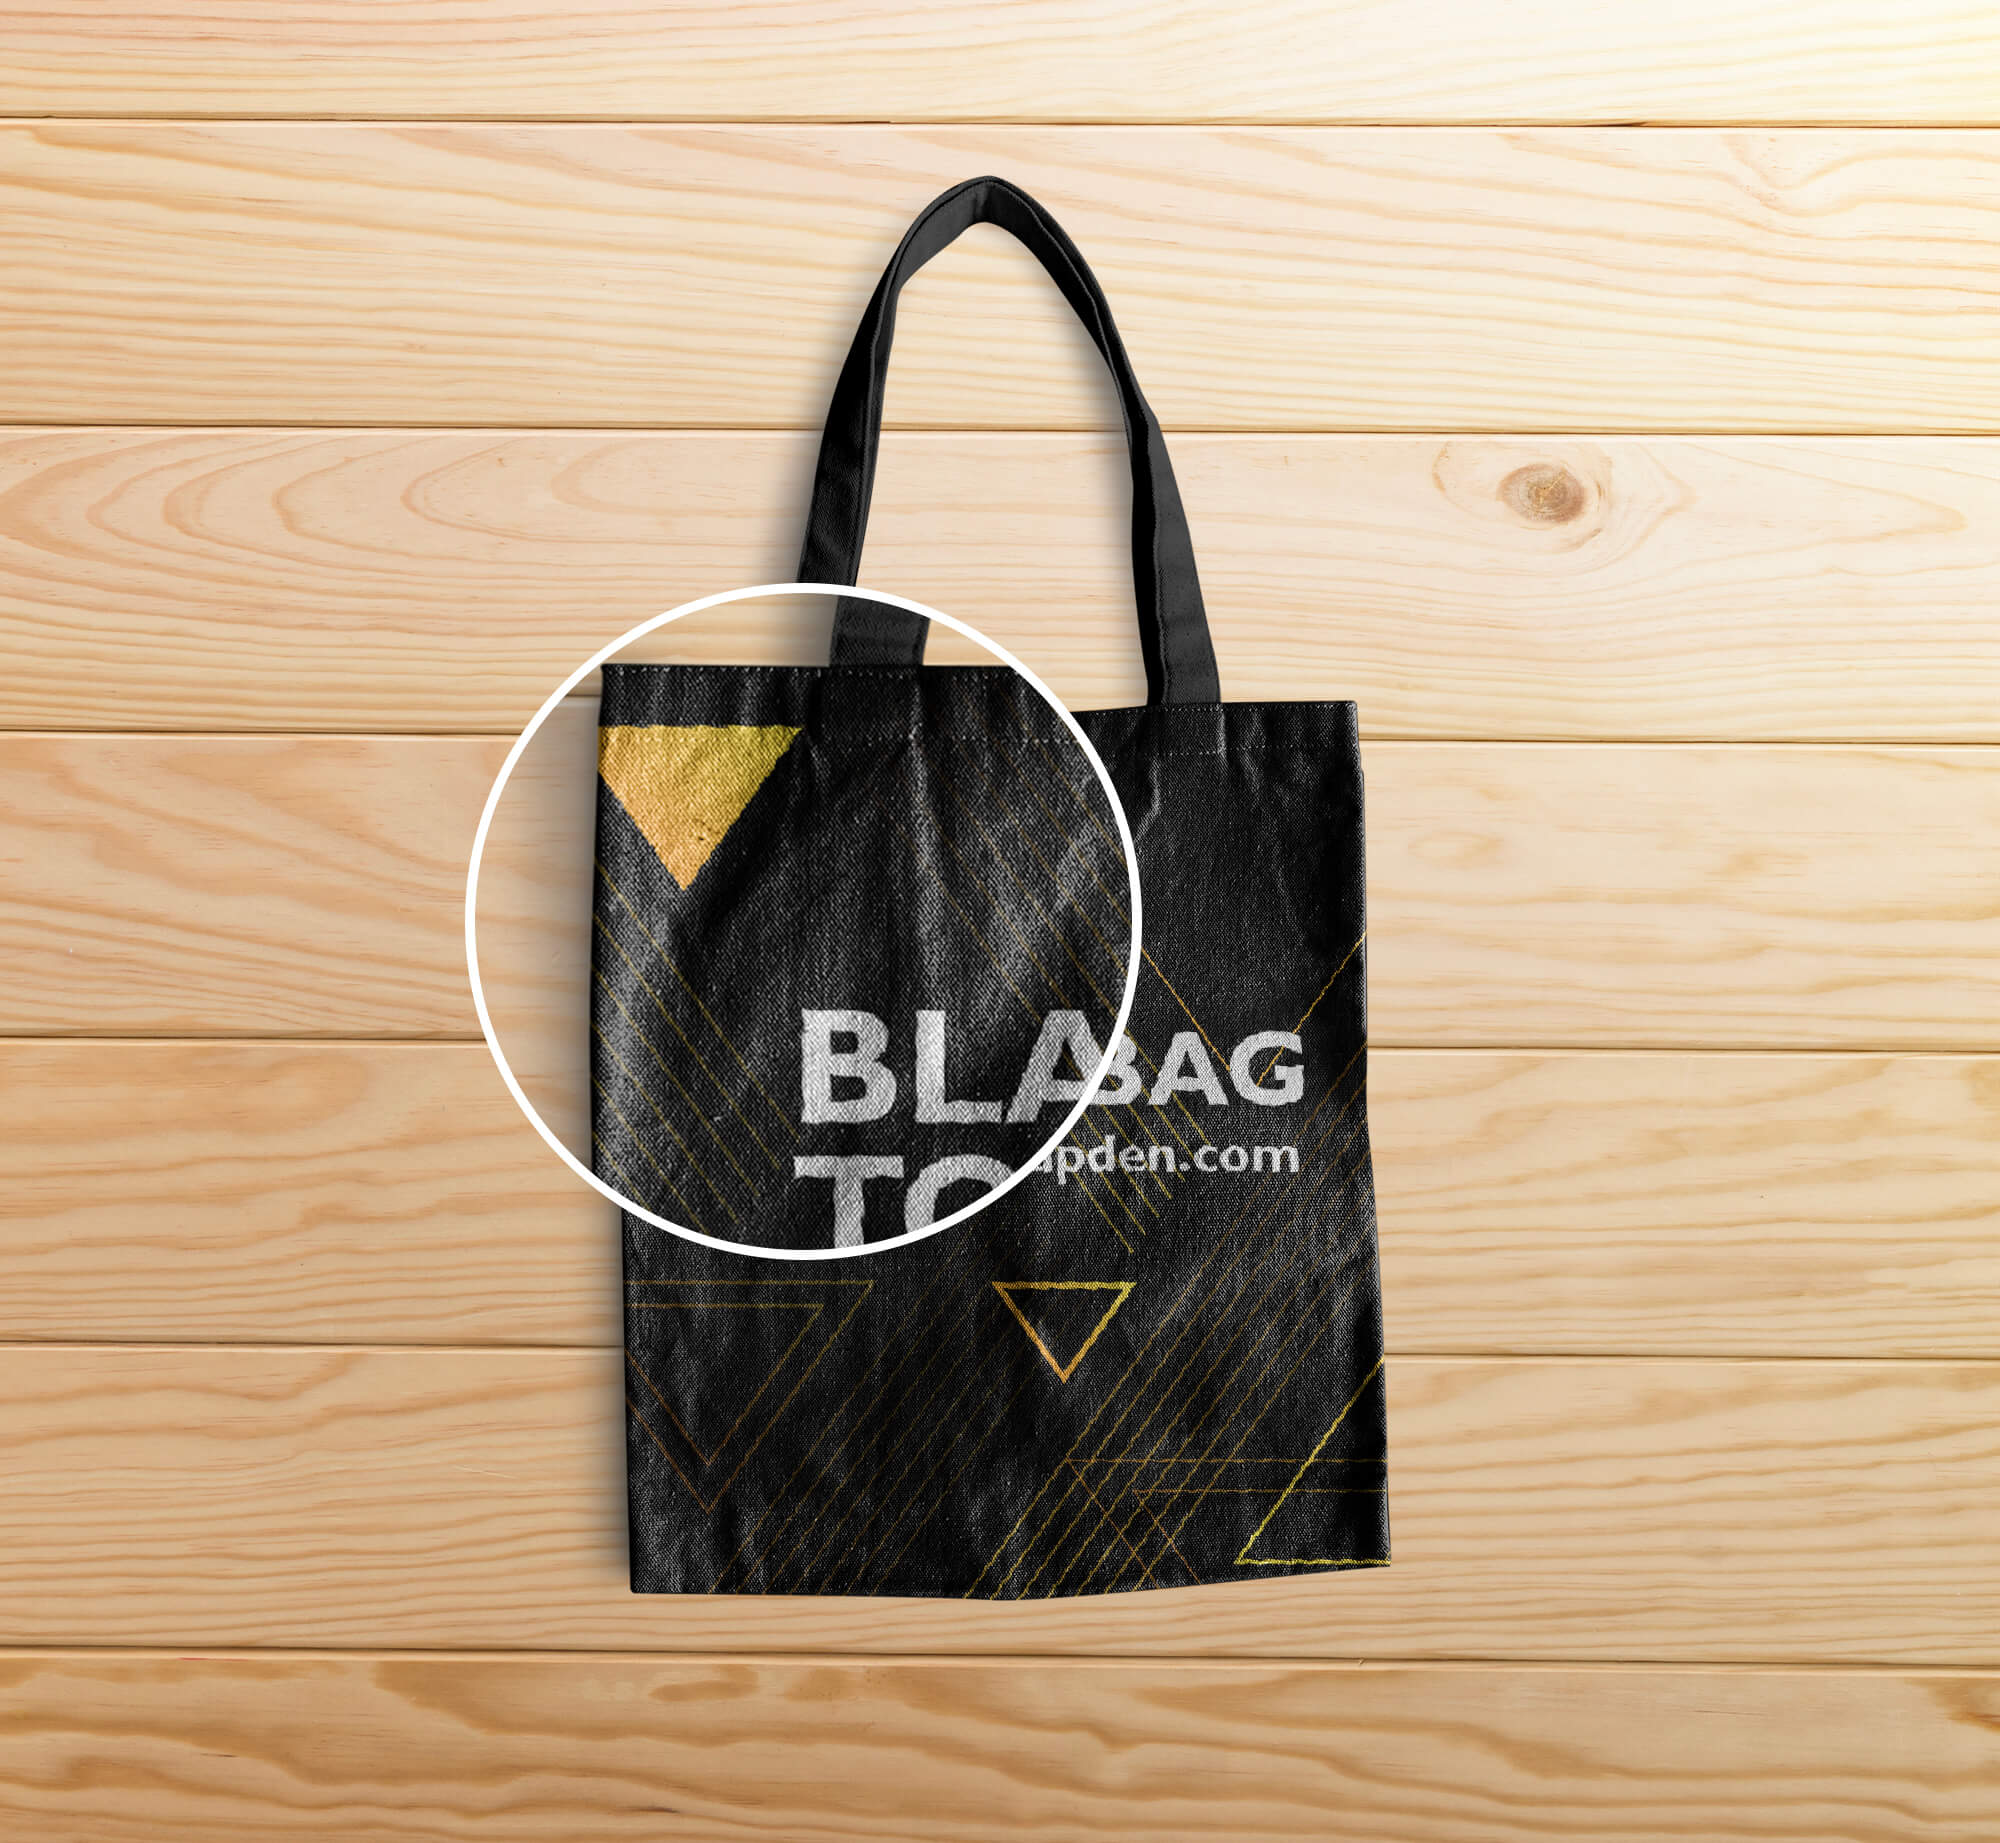 Paper bag shopping bag mockup png. Tote Bag Mockup Png Free Layered Svg Files Best Free Mockups The Complete Collection Of Free Design Mockup Psd Templates For Various Kinds Of Graphic Designing Best Free Downloads